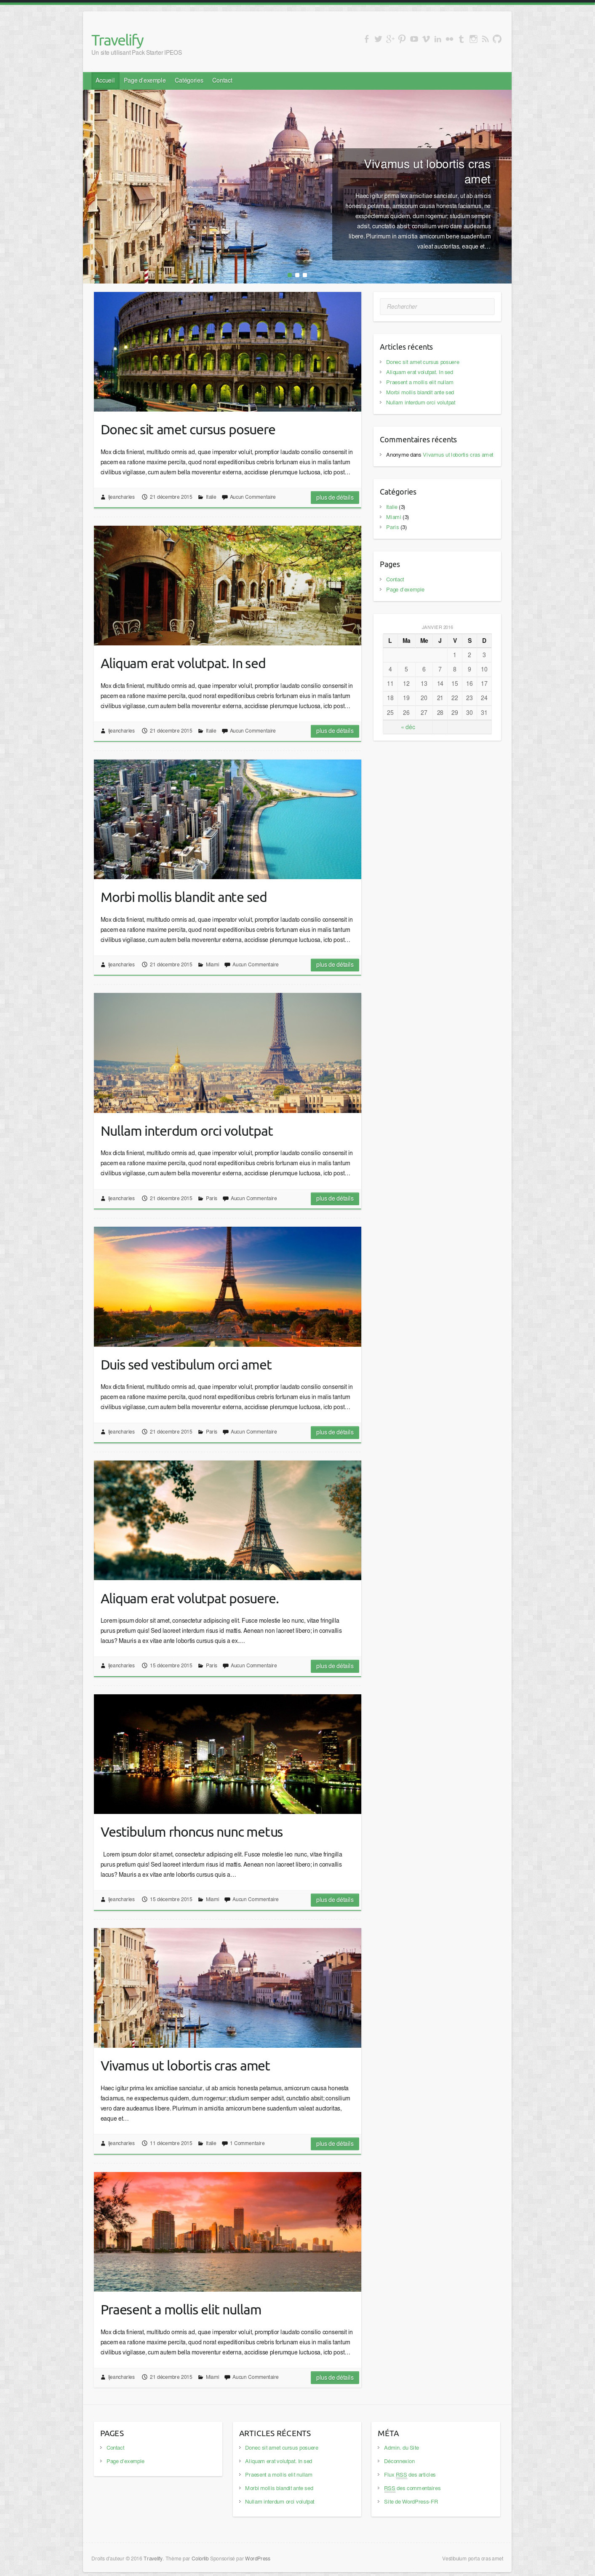 Travelify-Un-site-utilisant-Pack-Starter-IPEOS